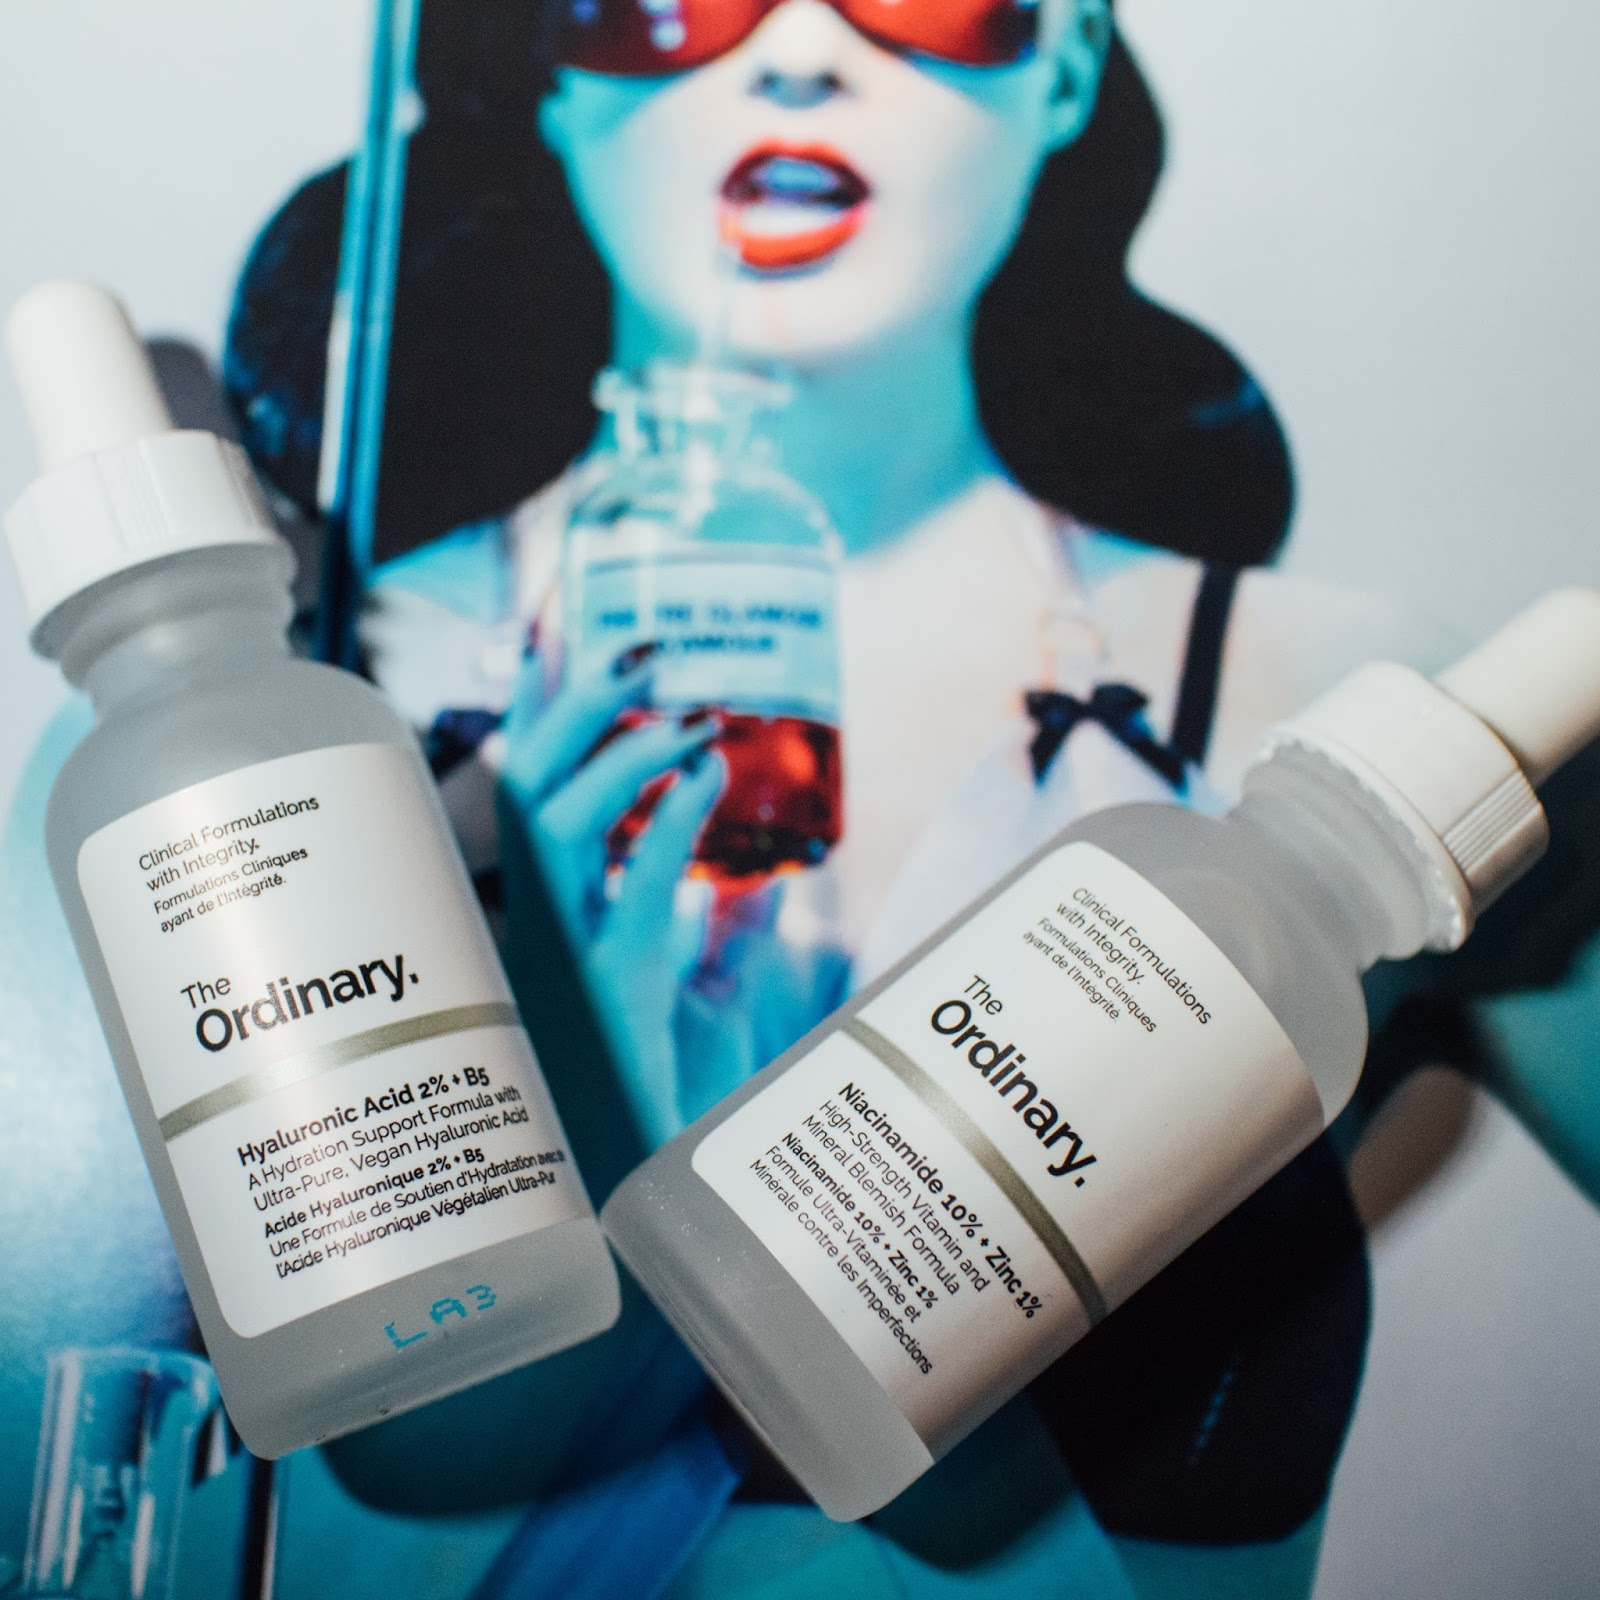 The Ordinary by Deciem